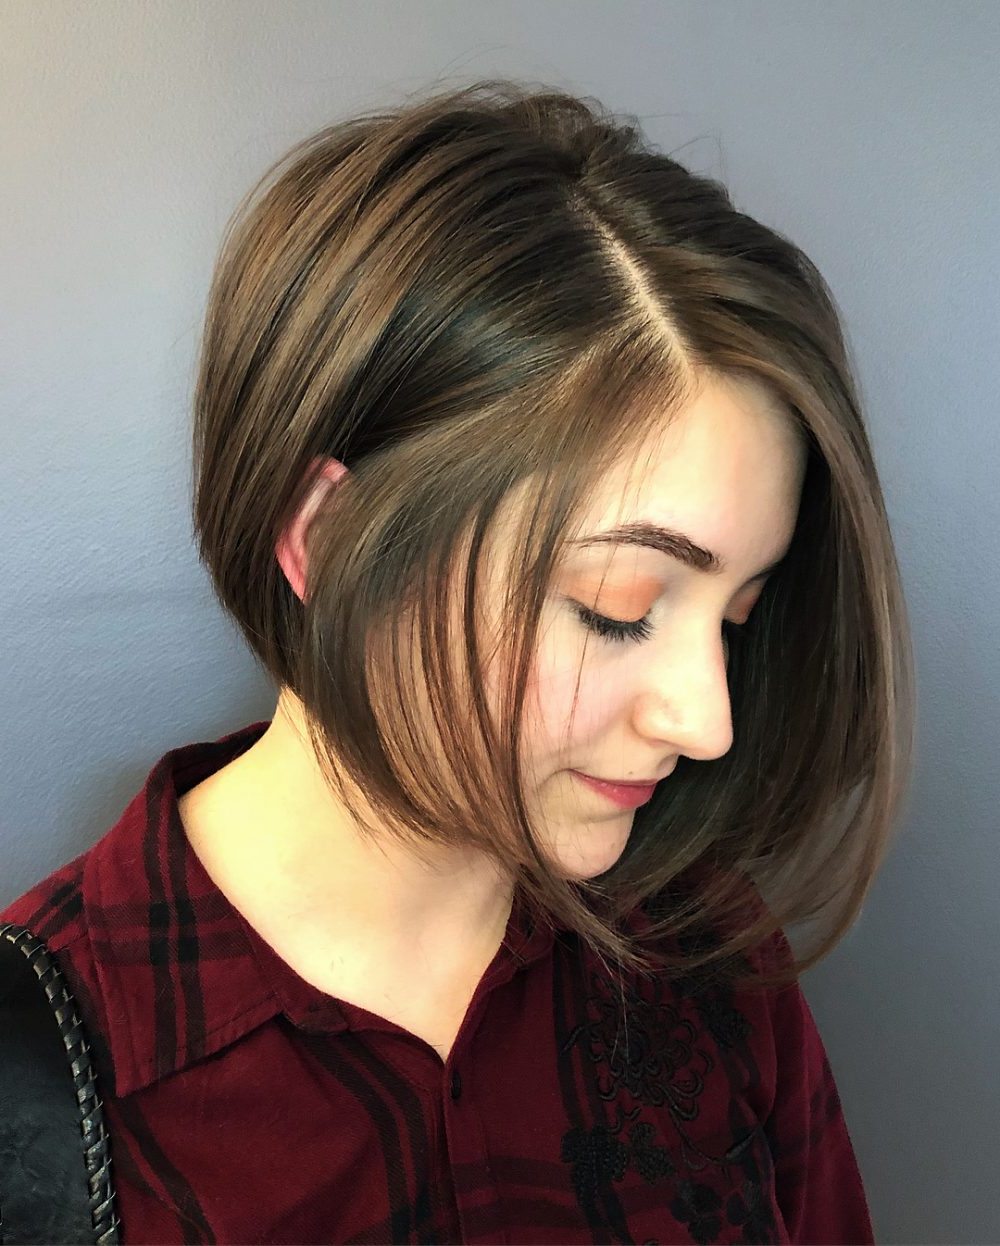 33 Flattering Short Hairstyles For Round Faces In 2018 Inside Edgy Short Hairstyles For Round Faces (View 11 of 25)